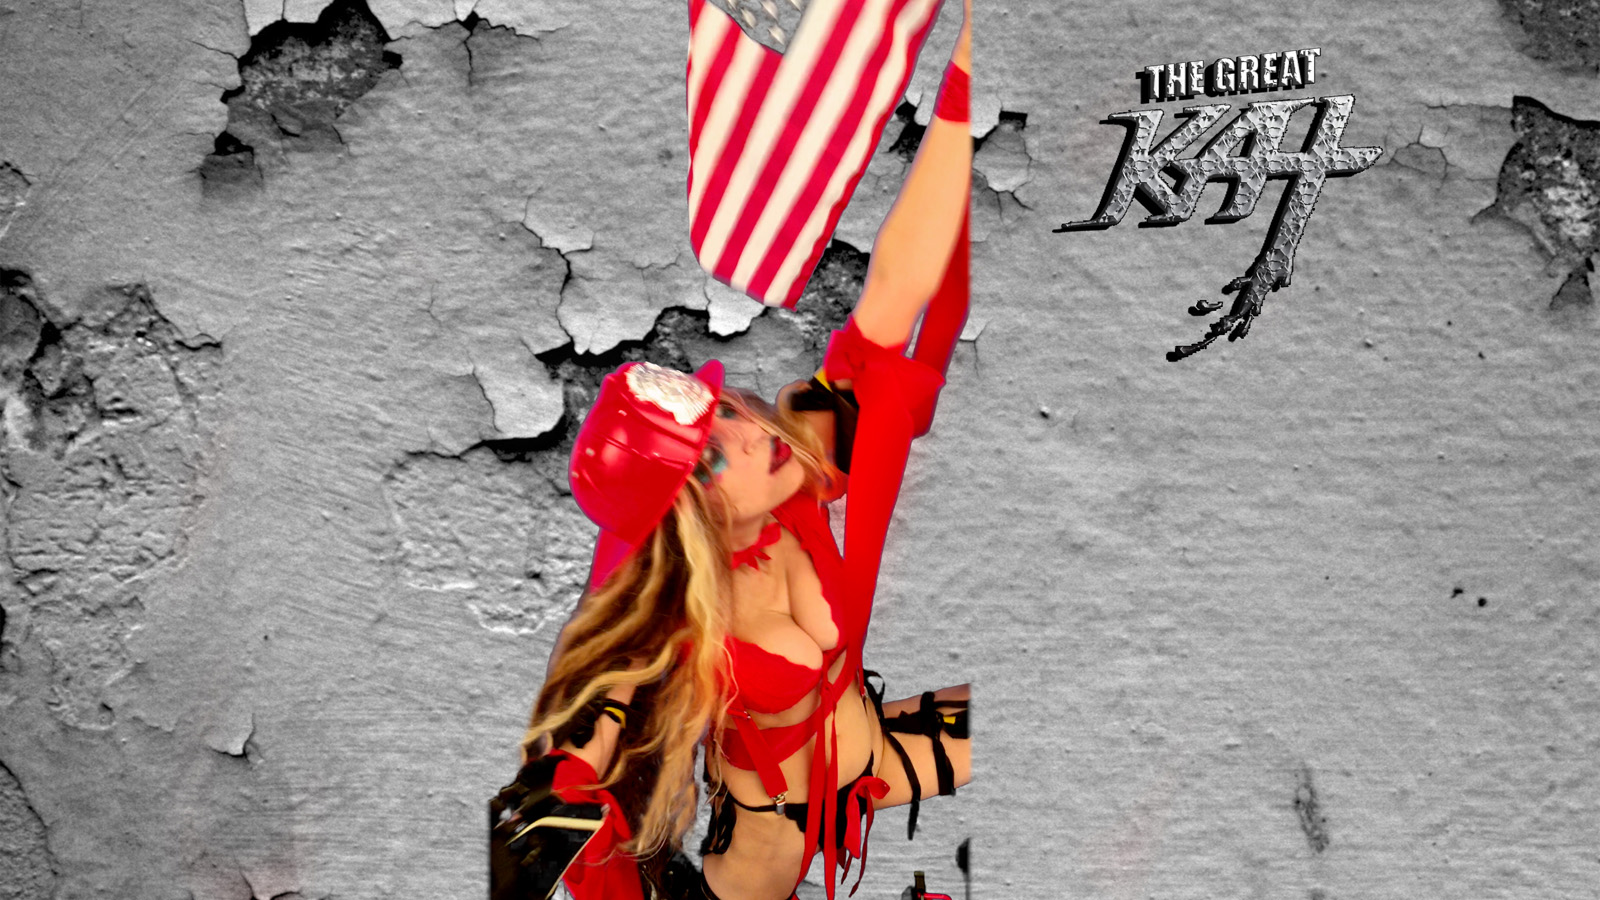 """GREAT KAT RAISES THE AMERICAN FLAG! From The Great Kat's """"TERROR"""" MUSIC VIDEO!"""